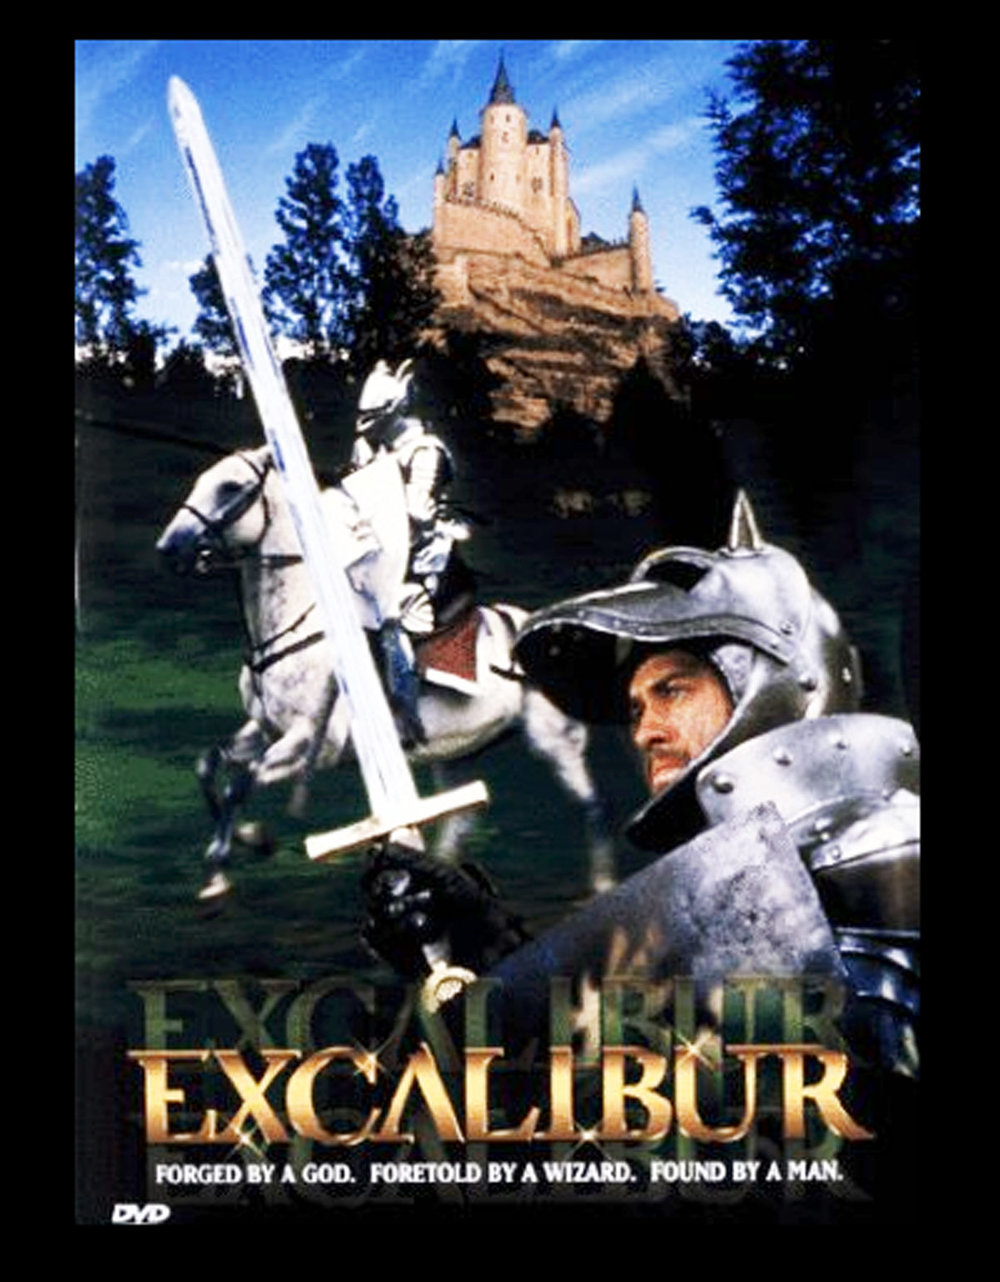 Excalibur - A John Boorman film, shot in Ireland at Ardmore Studios, Bray, Co Wicklow.With Helen Mirren and Liam Neeson in starring roles, this film was a landmark in their formative careers.